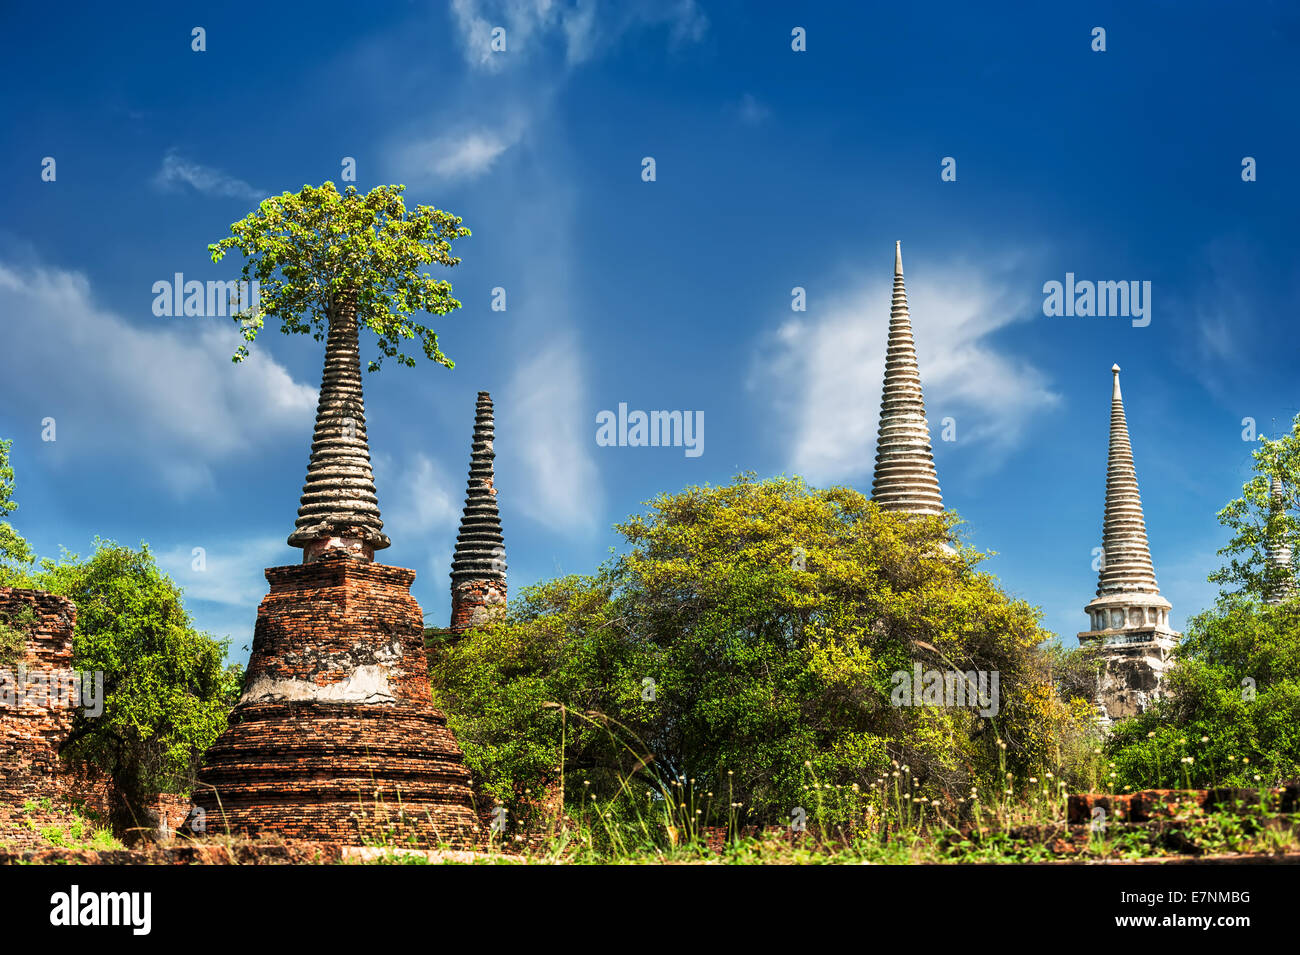 Asian Religious Architecture Ancient Ruins With Growing Trees Under Blue Sky Ayutthaya Thailand Travel Landscape And Destinat